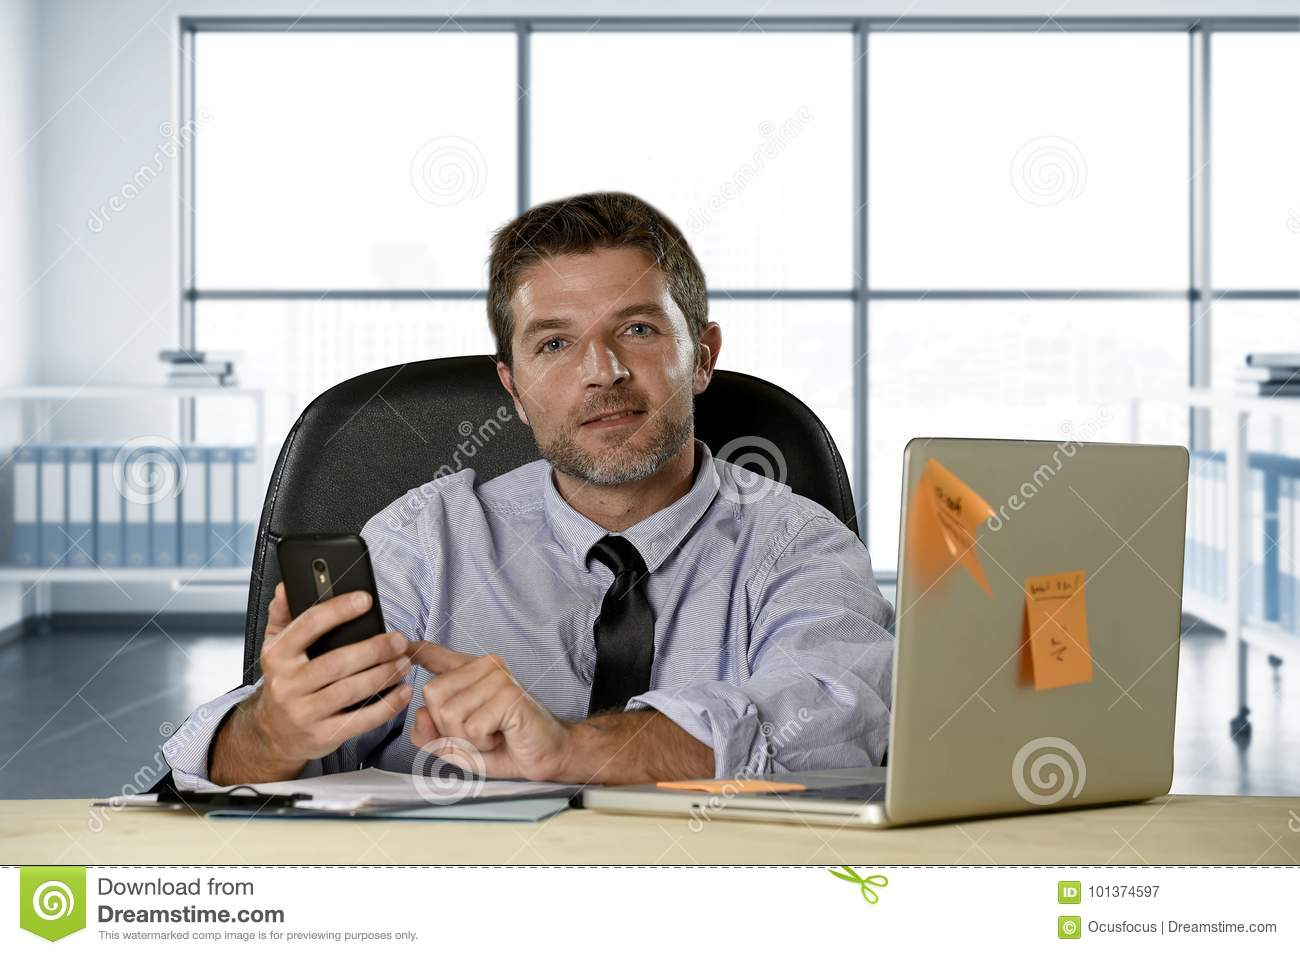 Corporate portrait of happy successful businessman in shirt and tie smiling at computer desk with mobile phone